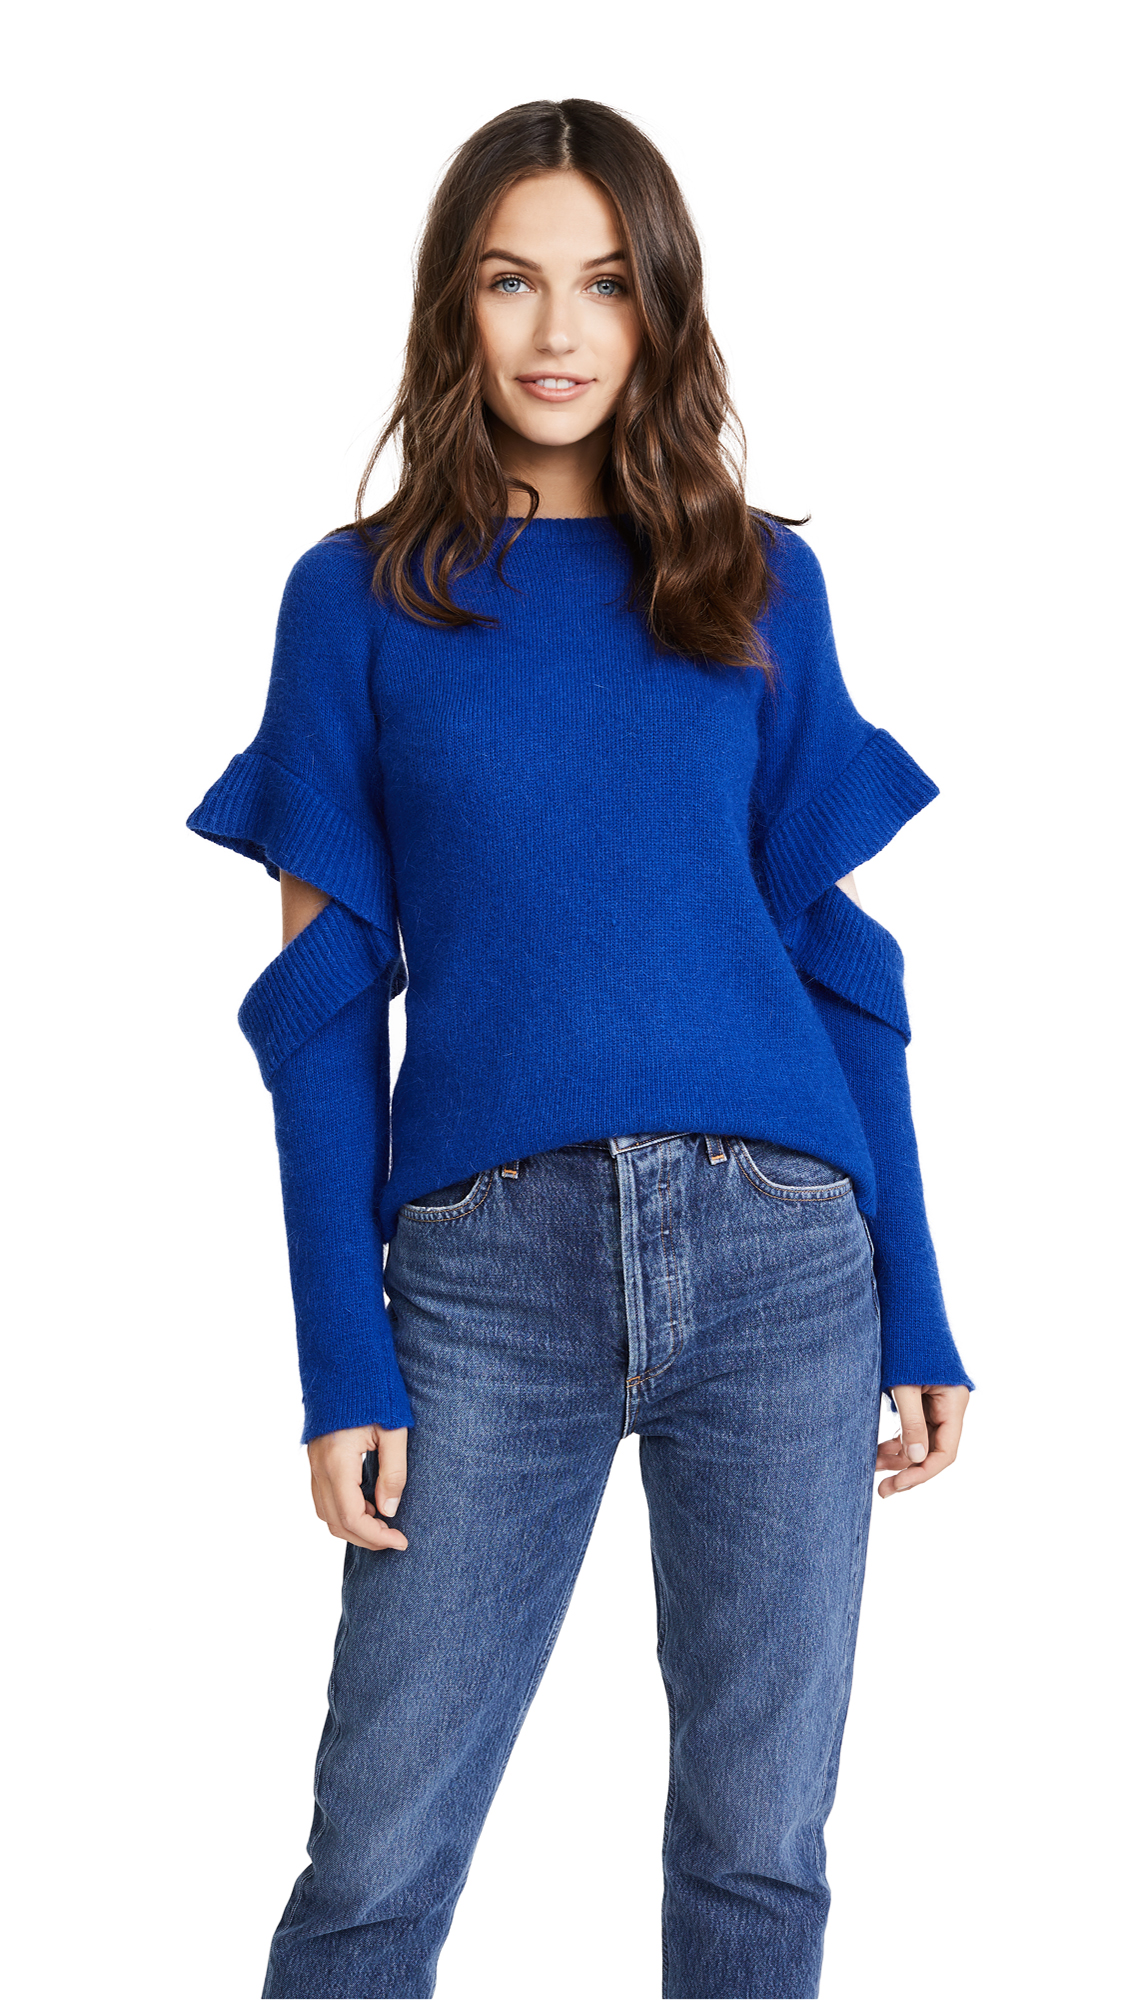 endless rose Sweater with Sleeve Ruffle Detail - Cobalt Blue